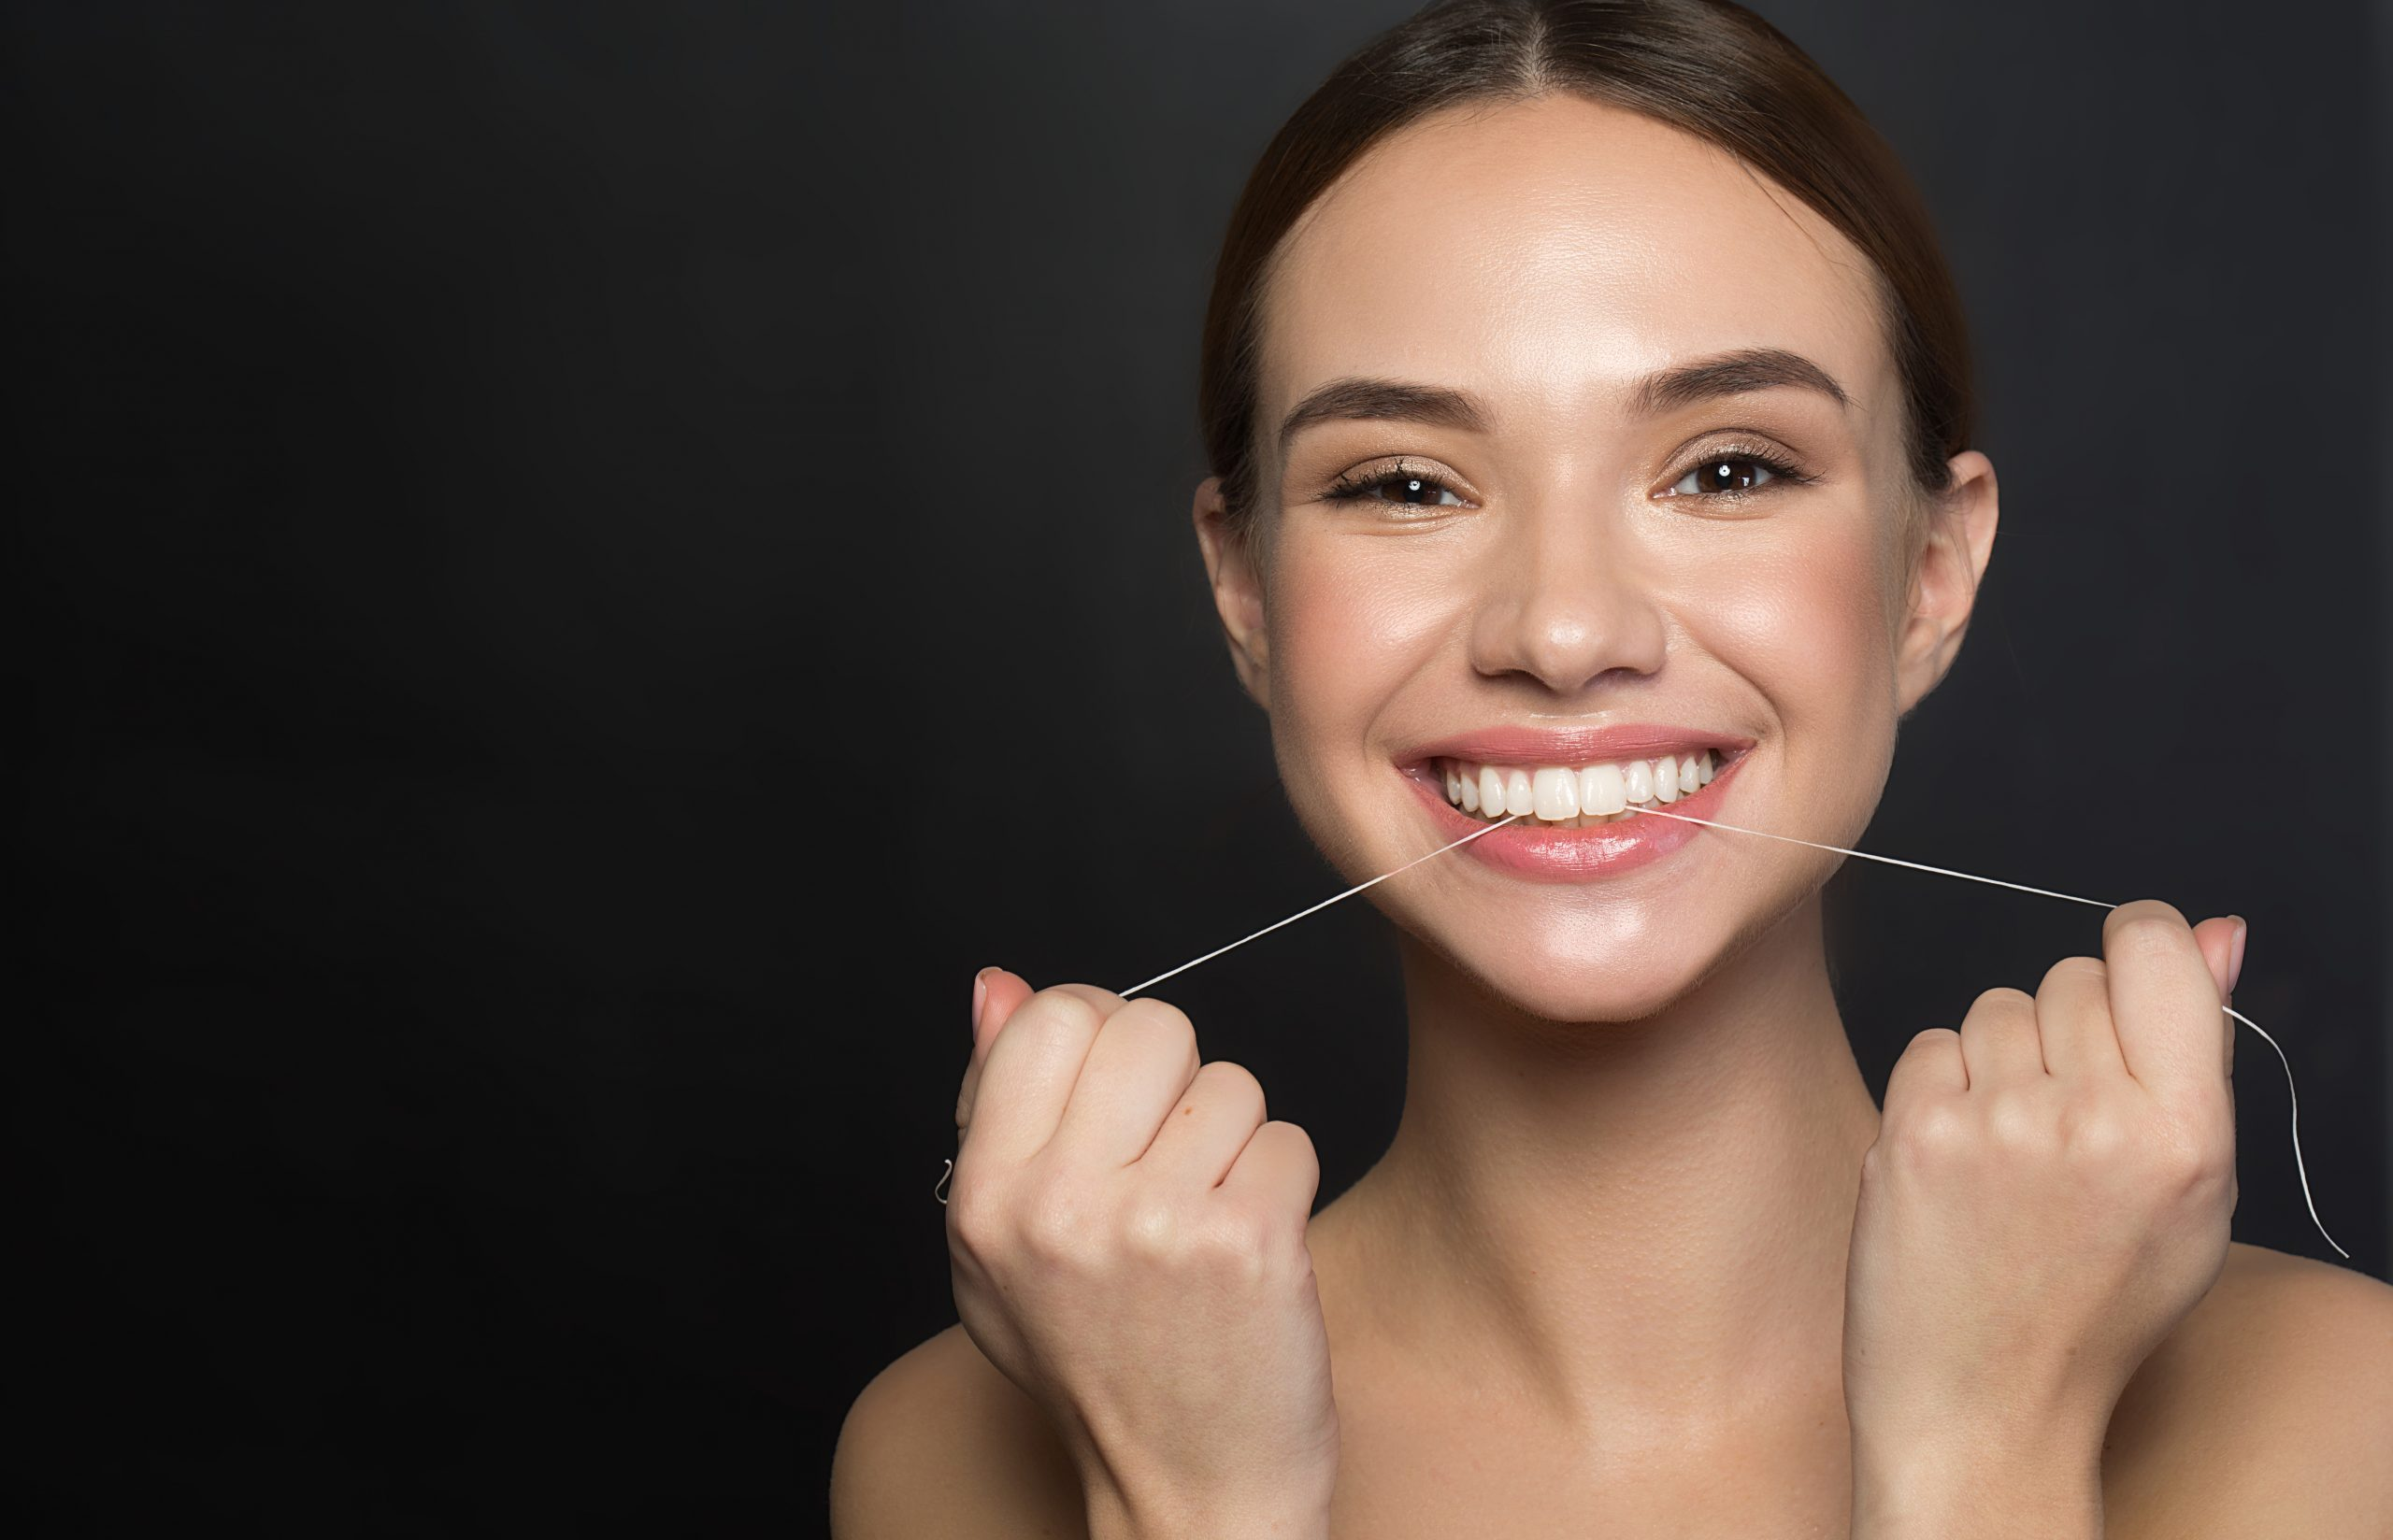 Portrait of positive young woman who is taking care of her teeth. She is holding dental floss and laughing while looking at camera with joy. Isolated and copy space in left side. Dental health concept